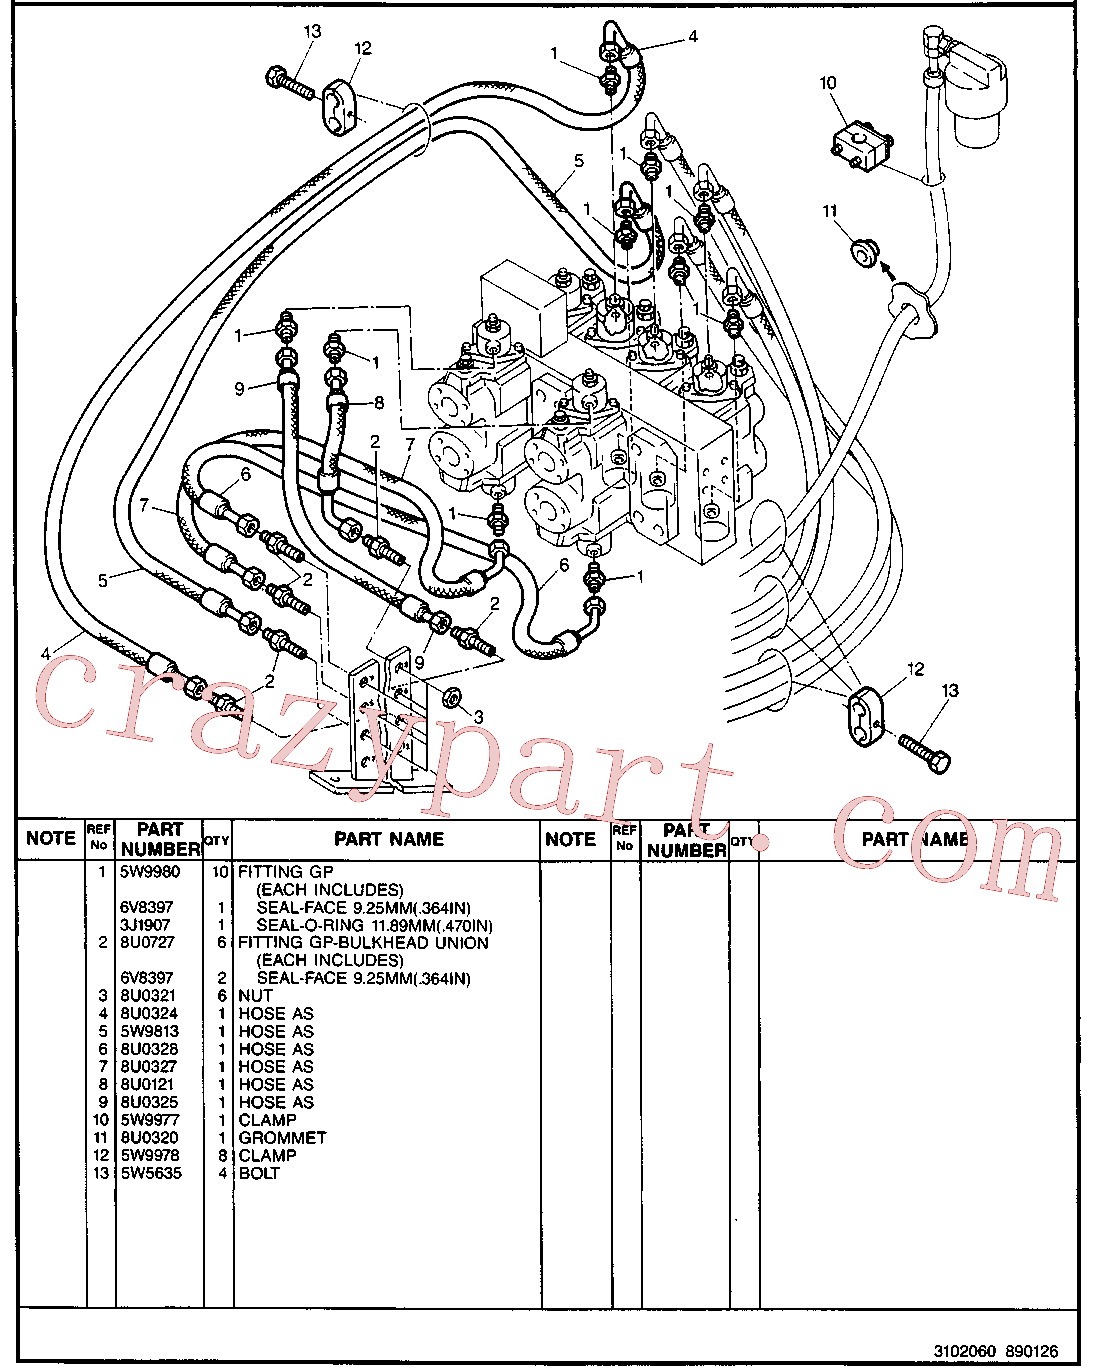 CAT 8U-0302 for 213B Excavator(EXC) hydraulic system 5W-9802 Assembly